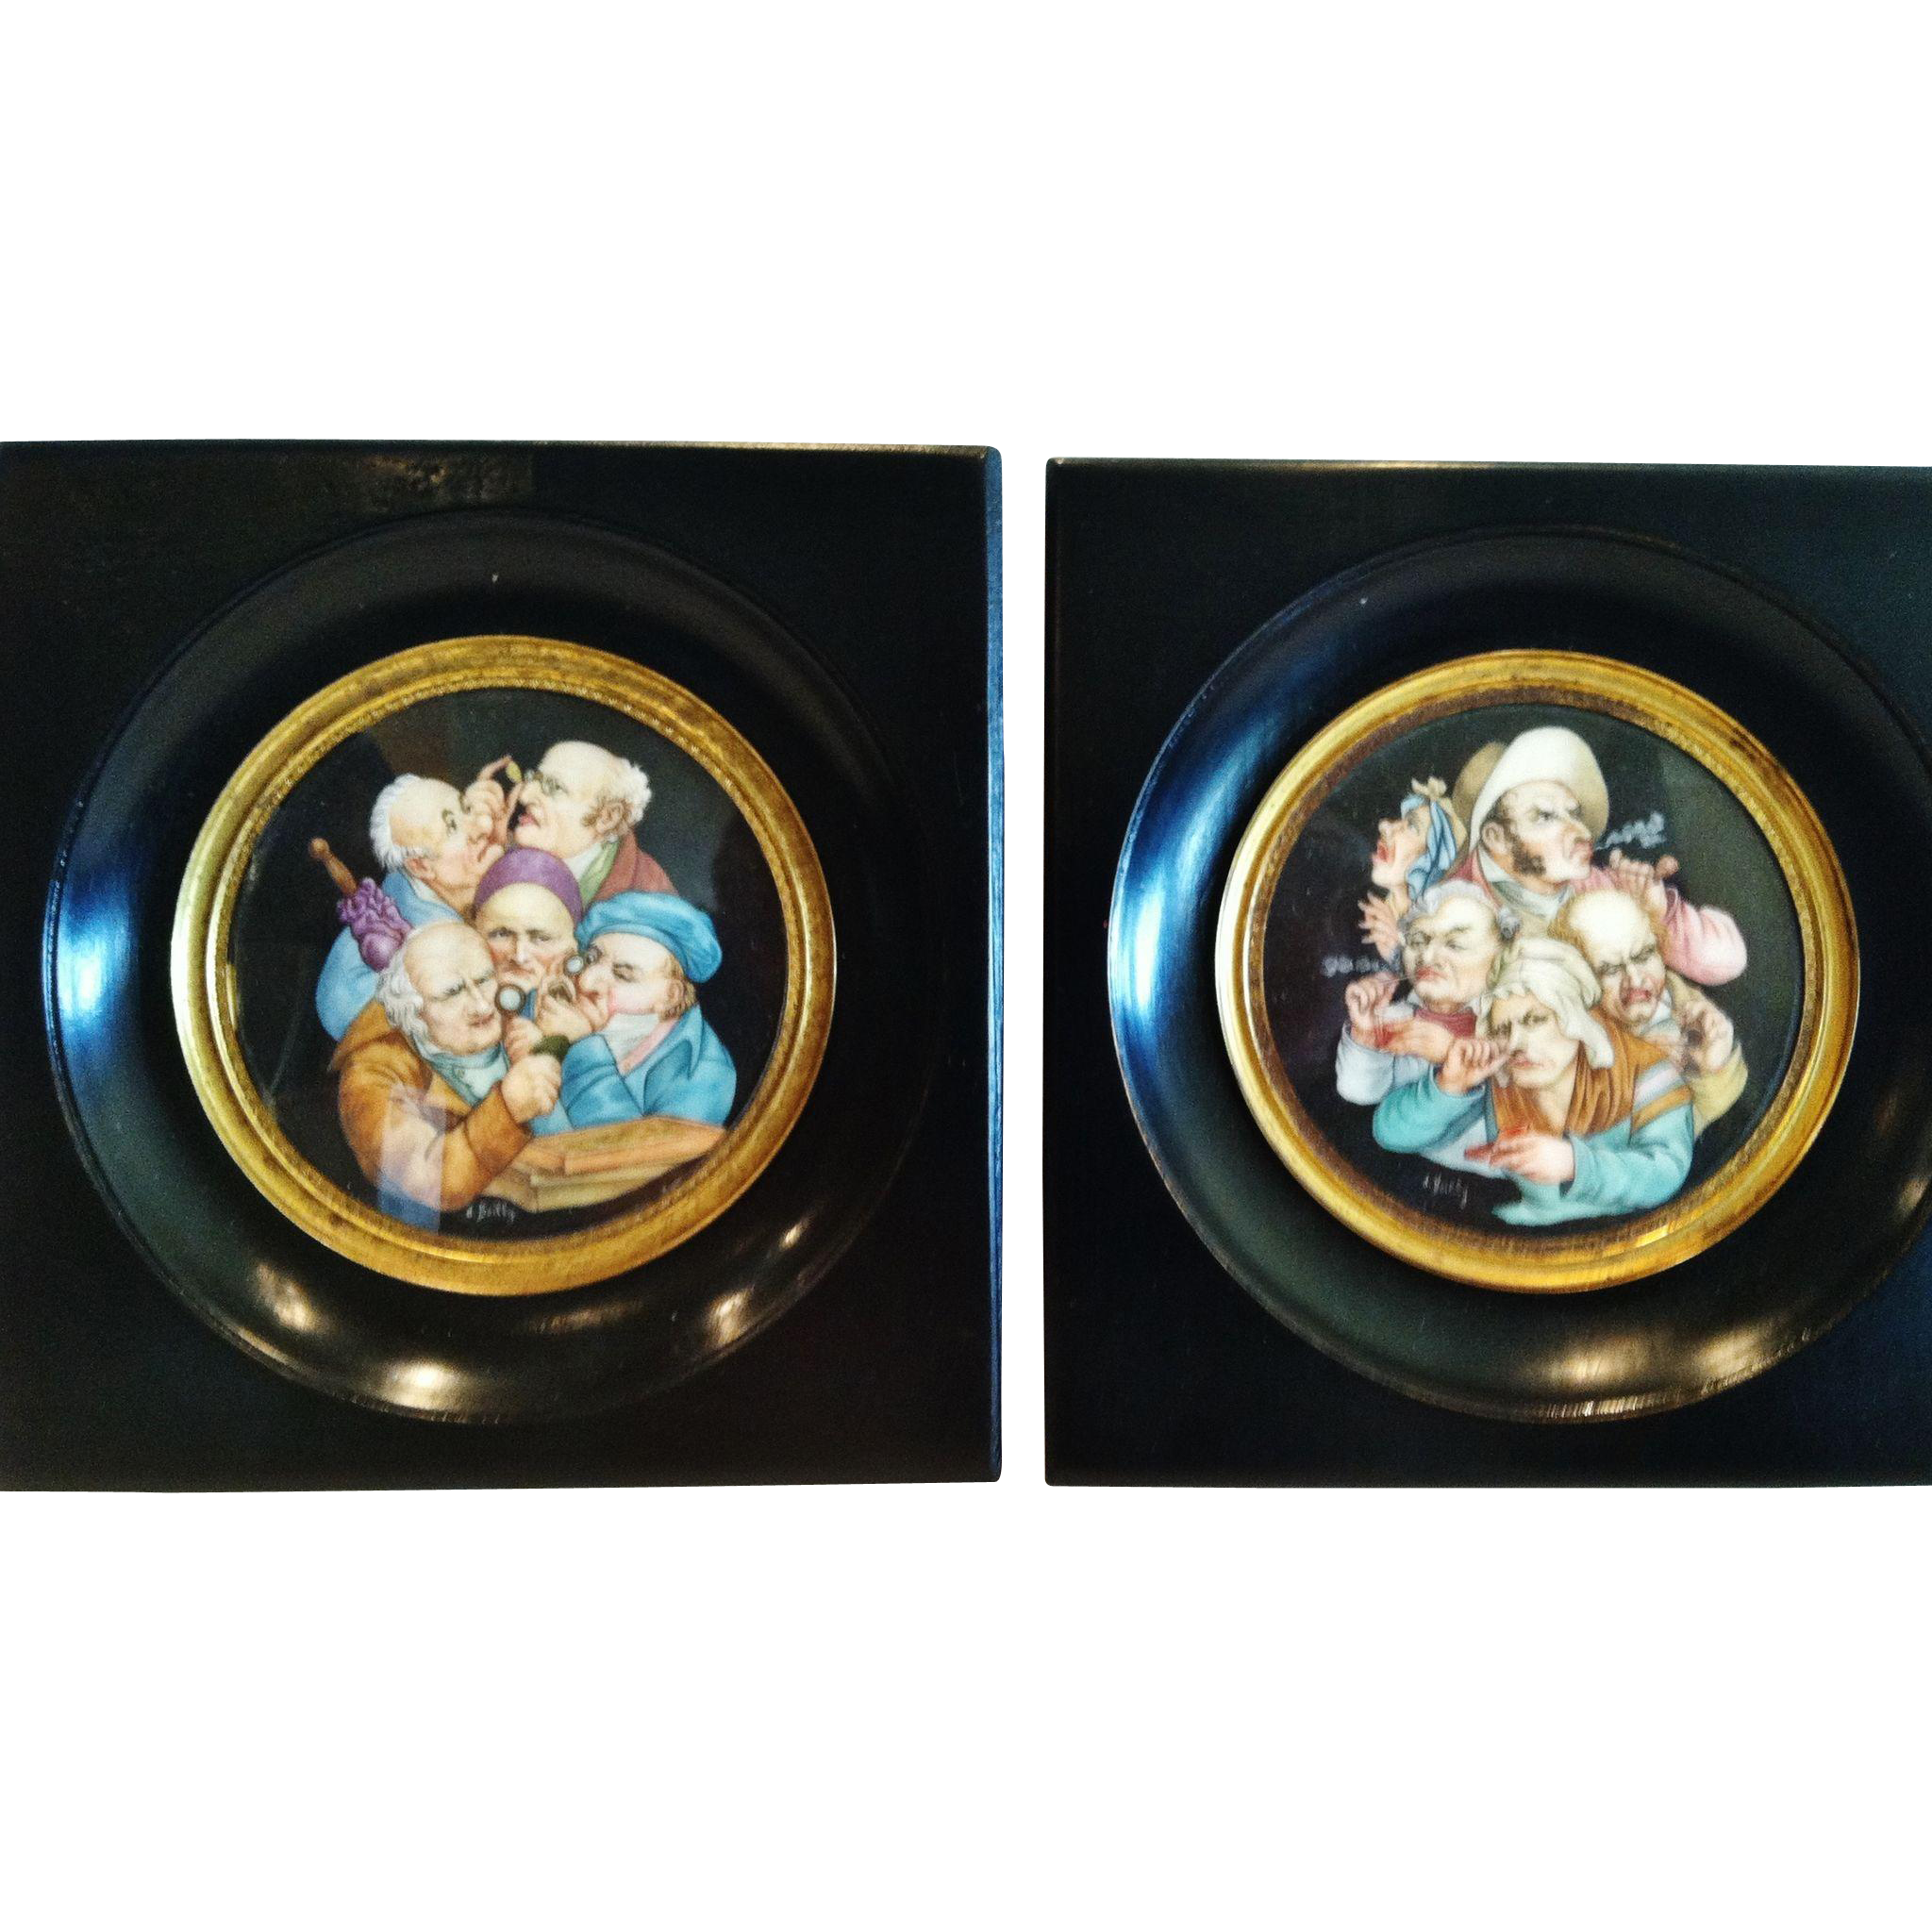 Pair of Miniature Paintings, Boilly Early 19th Century